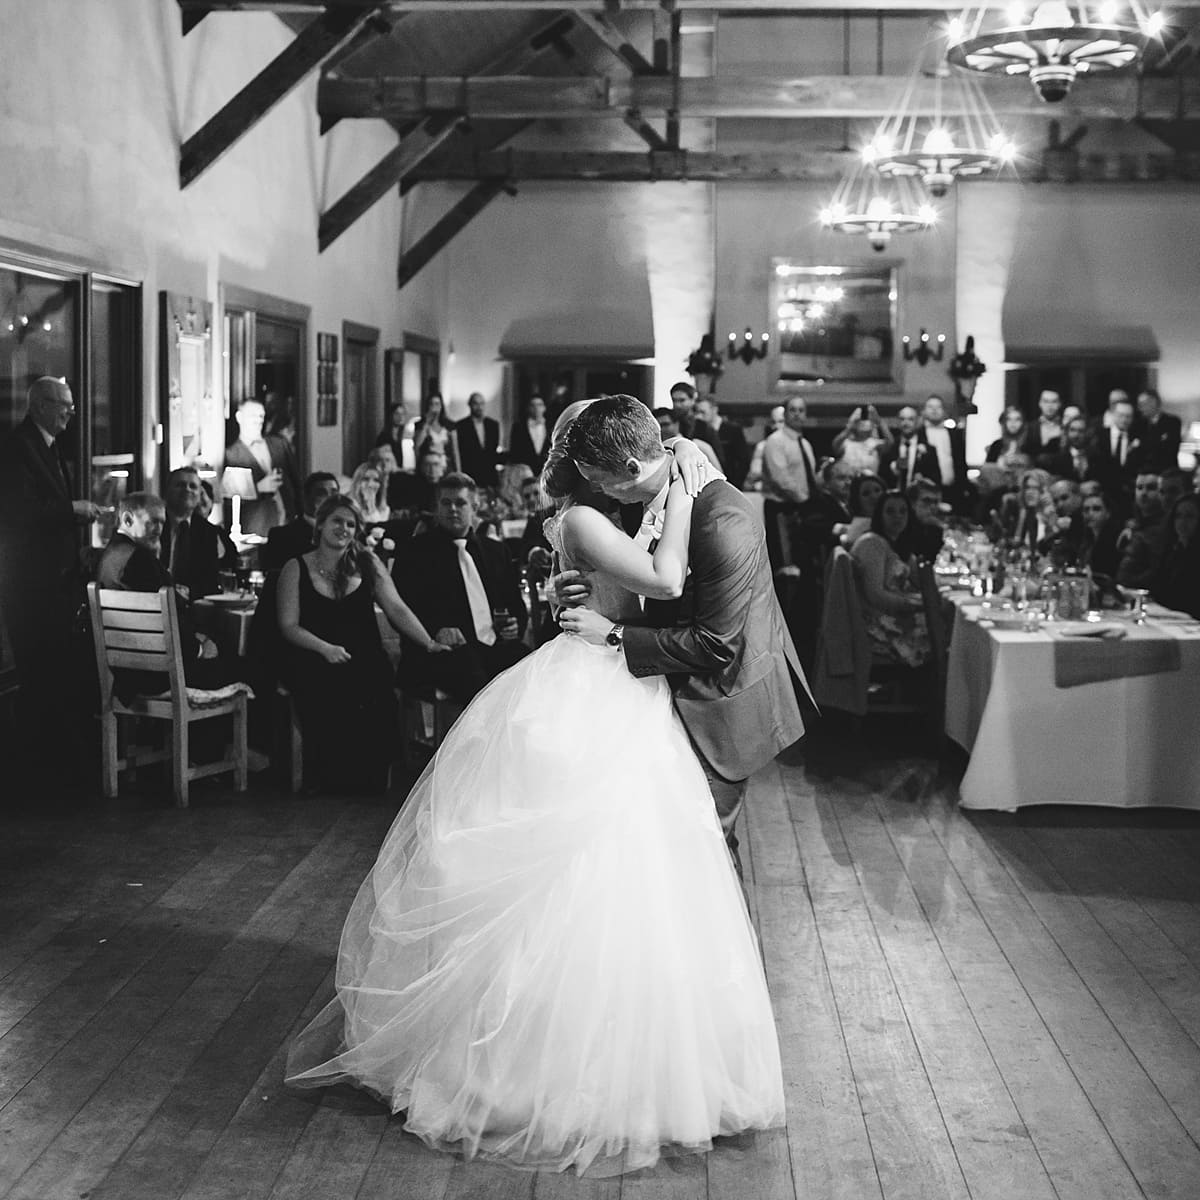 First dance photo of the bride and groom at Centennial Vineyards